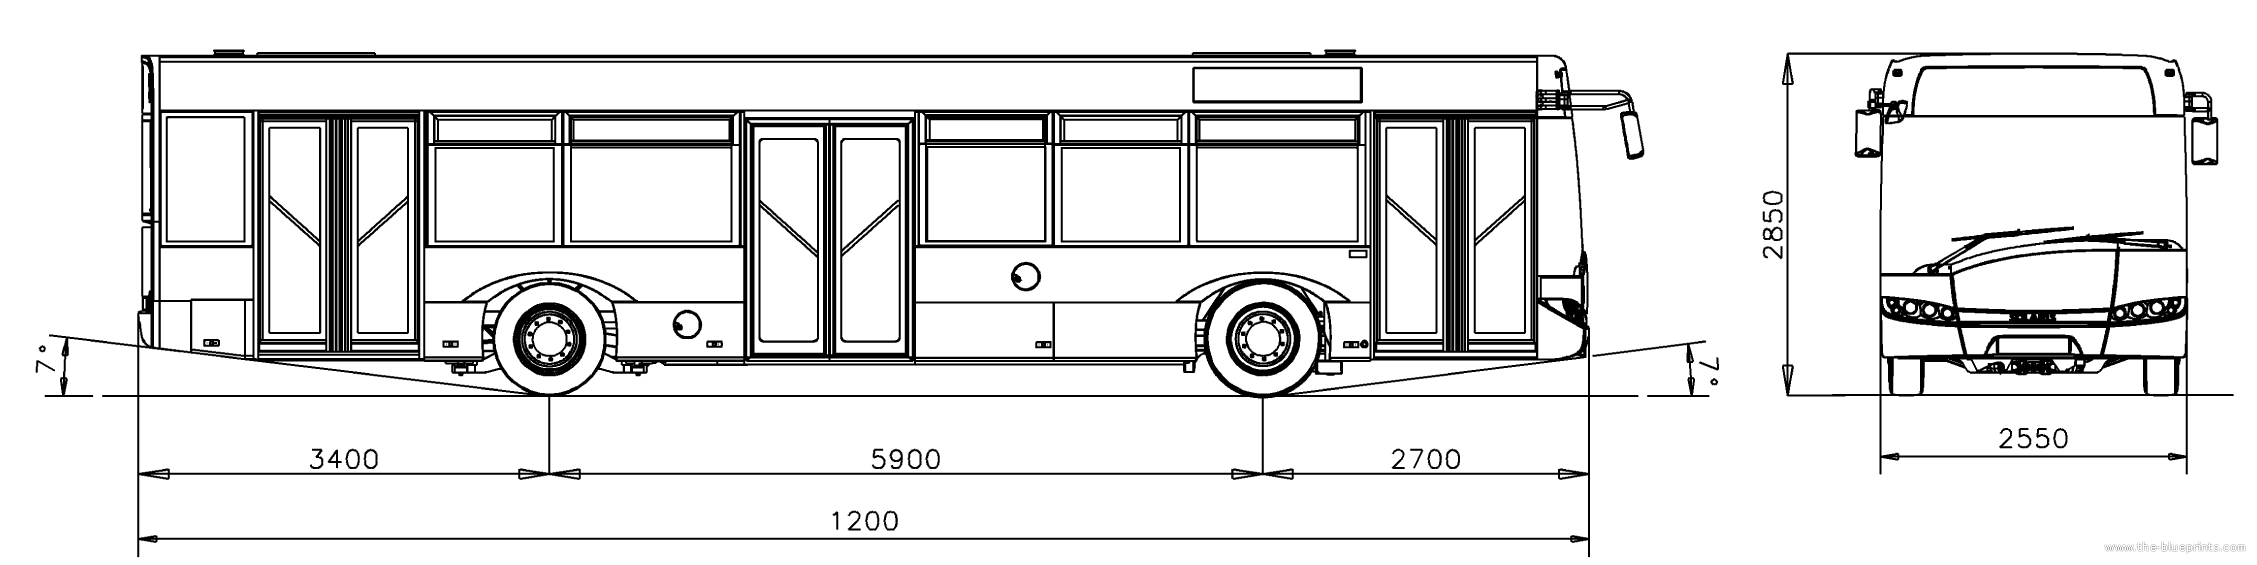 The-Blueprints.com - Blueprints > Buses > Solaris > Solaris Urbino 12